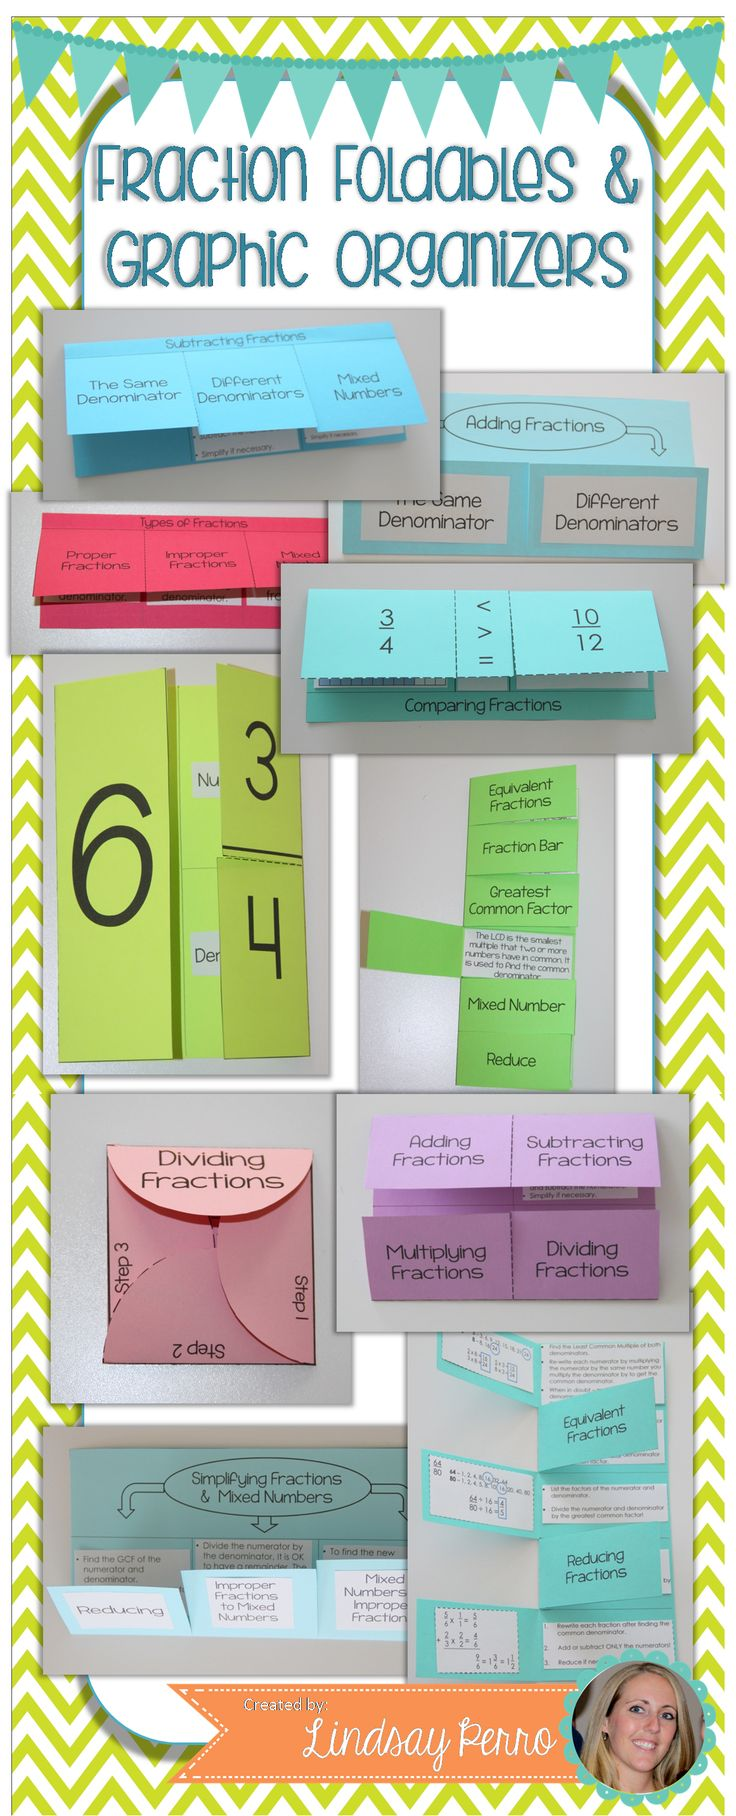 Chances are, your students let out a nice big GROAN when you tell them it's time to take notes. Bring some color, fun and creativity to notes by using foldables and graphic organizers!  This collection of 10 foldables and 5 graphic organizers will breathe some life back into notes on fraction operations and concepts.  Each foldable includes directions and pictures, as well as a variety of options for you when it comes to how complete you want the foldables to be.